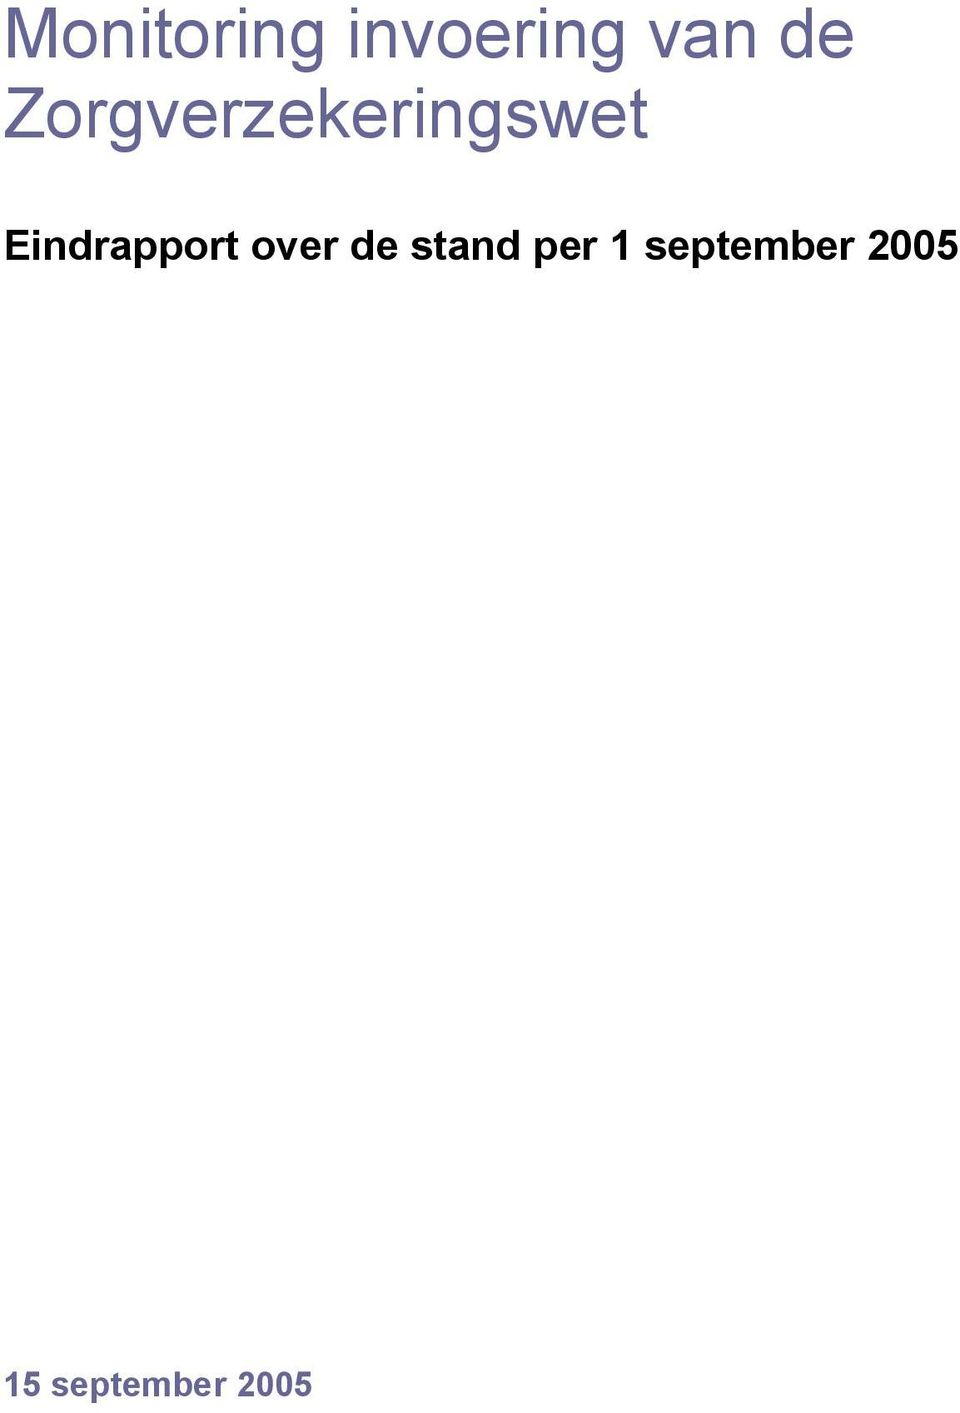 Eindrapport over de stand